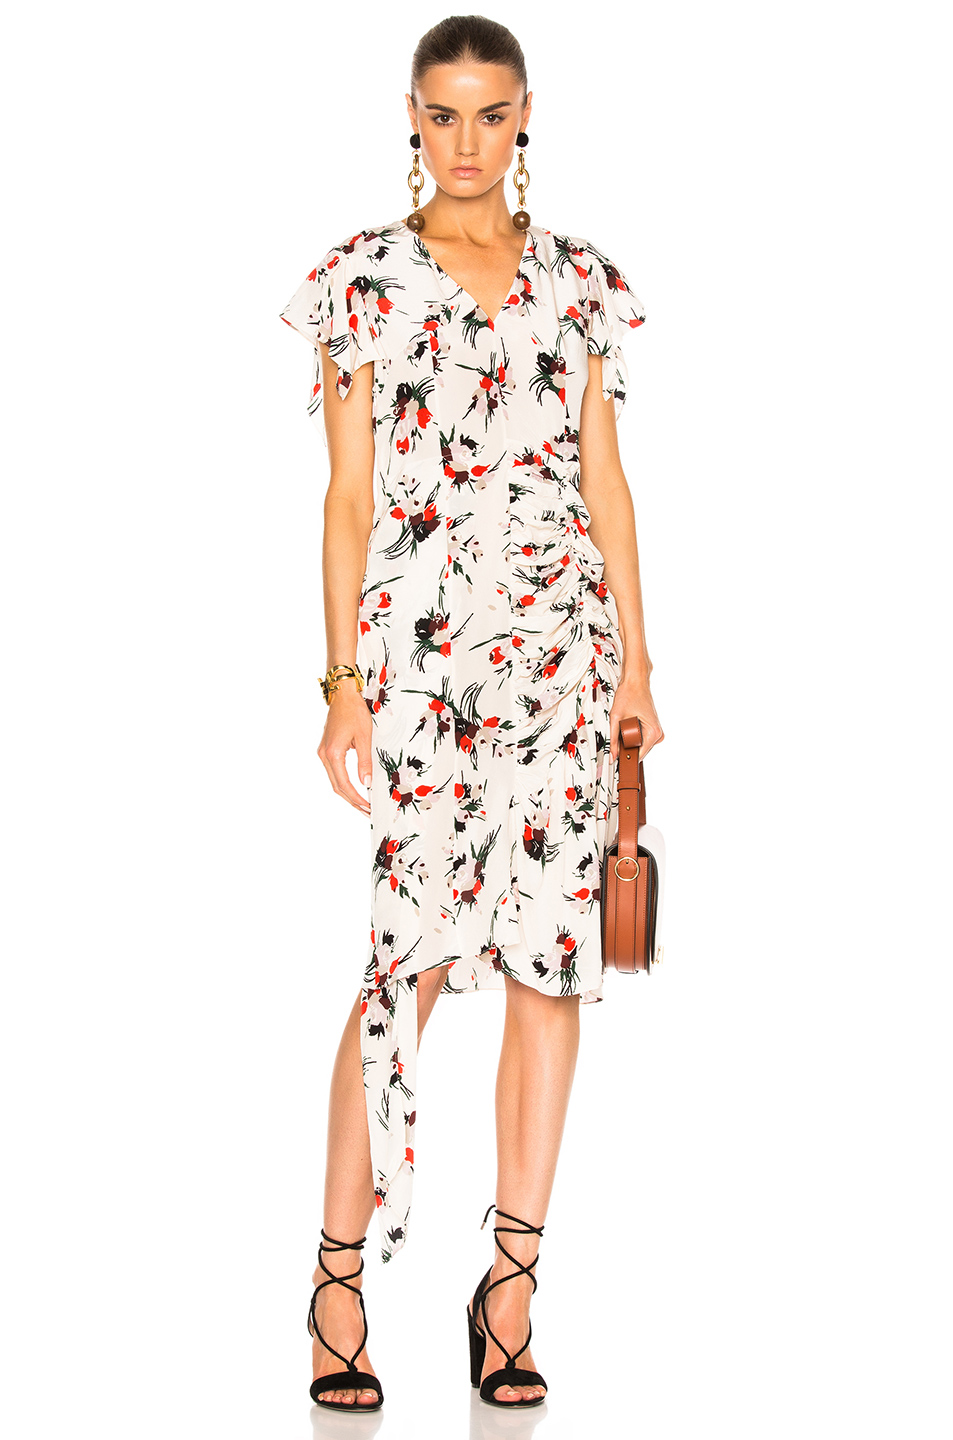 Marni Printed Short Sleeve Dress in Floral,White